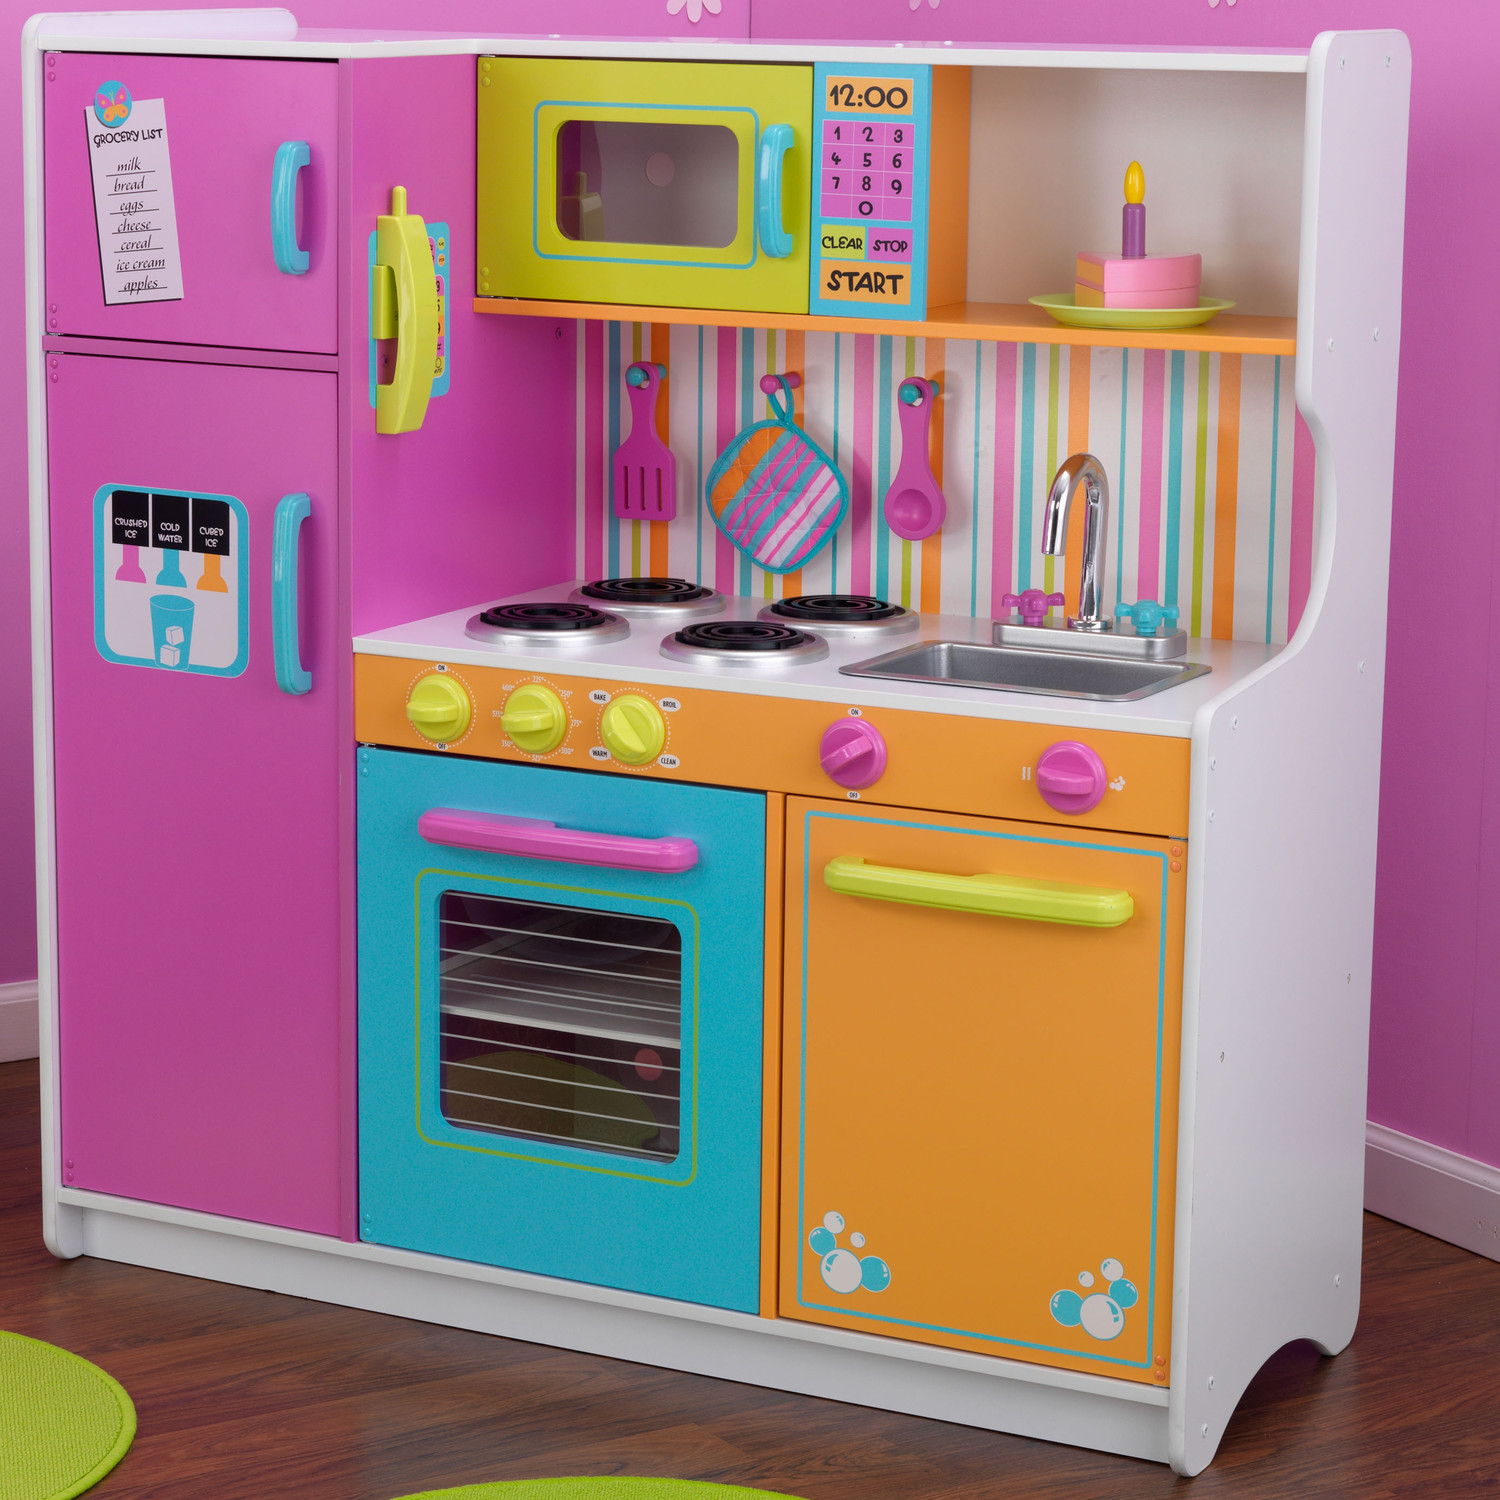 indigo canada toy sale save 59 off kidkraft deluxe kitchen playset now 100 was. Black Bedroom Furniture Sets. Home Design Ideas